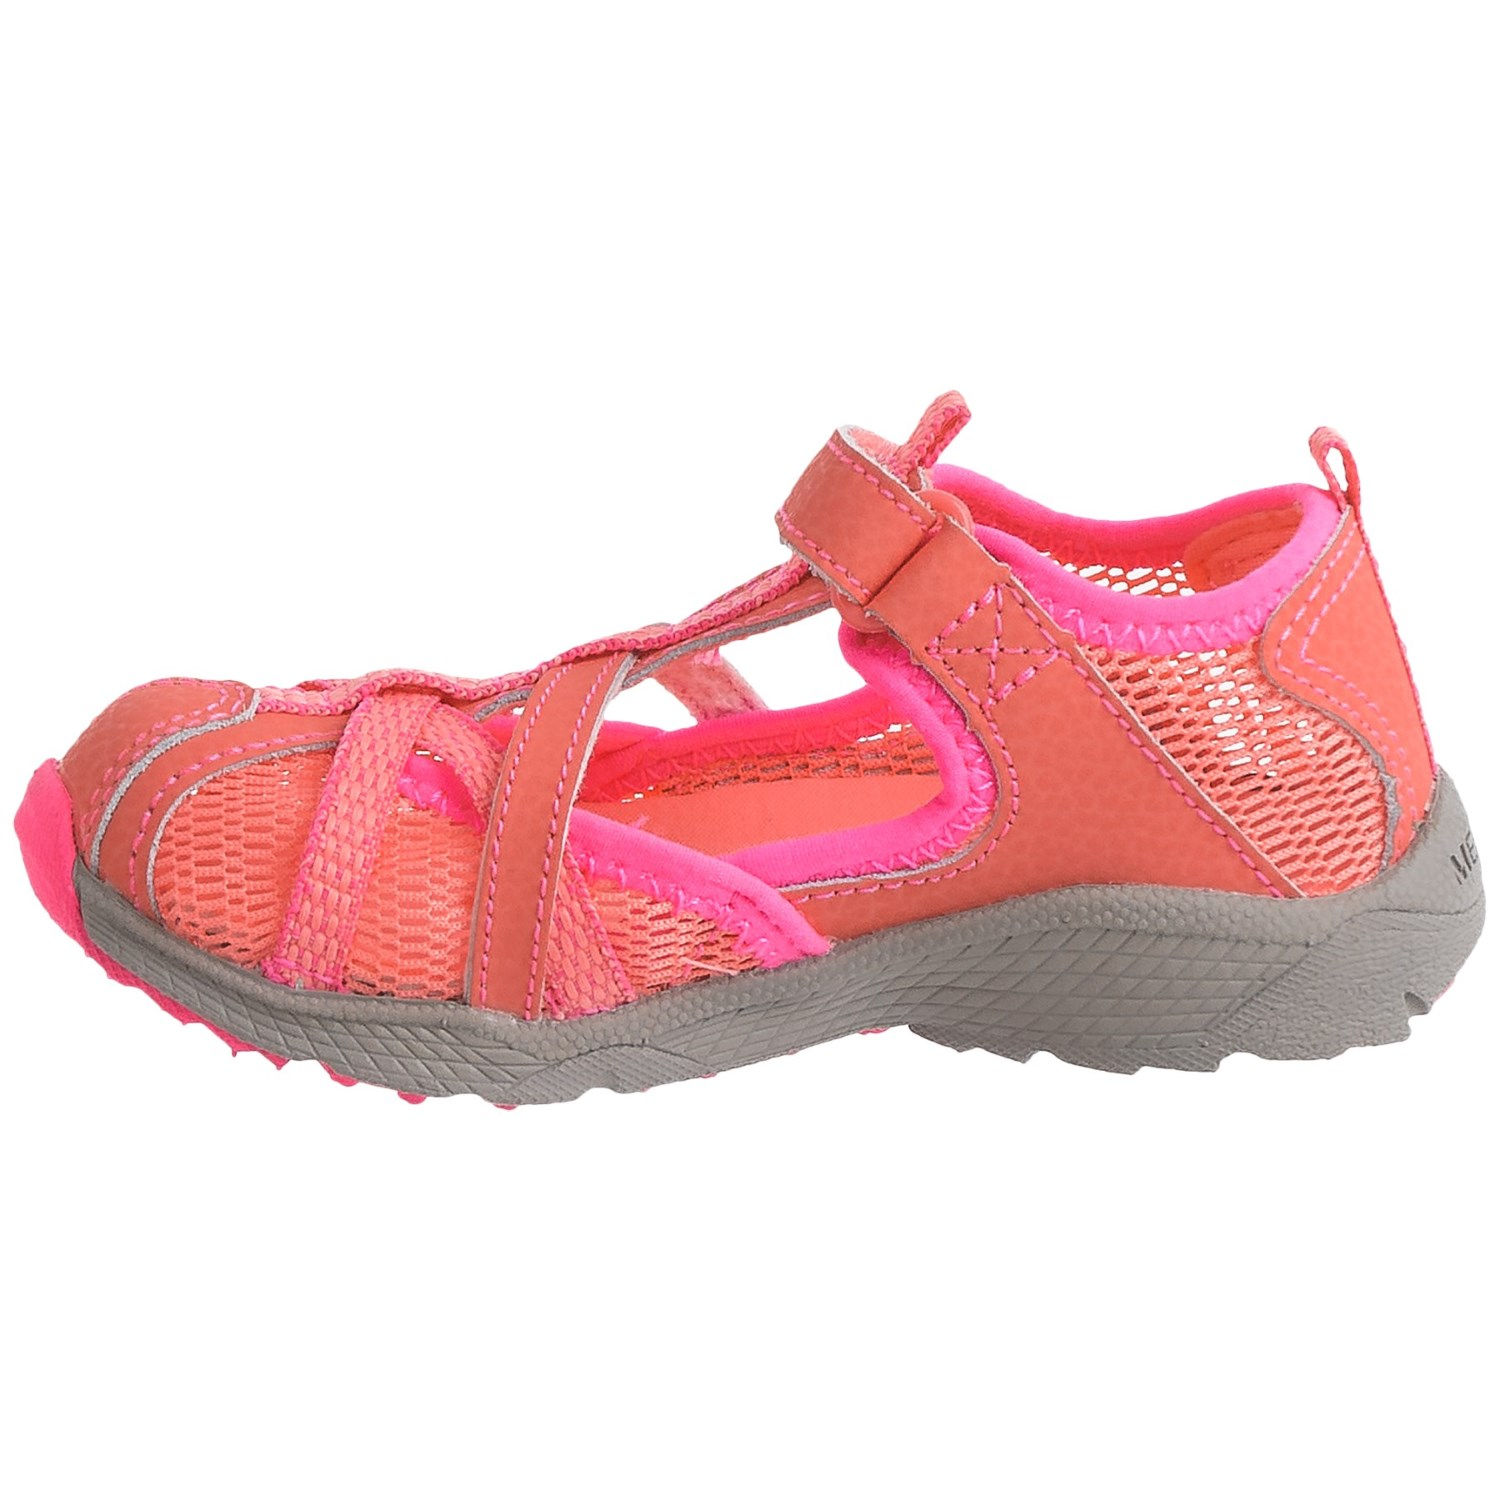 a78a4bf10f4b Merrell Hydro Monarch Junior Water Sandals - Leather and Mesh (For Little  and Big Girls)